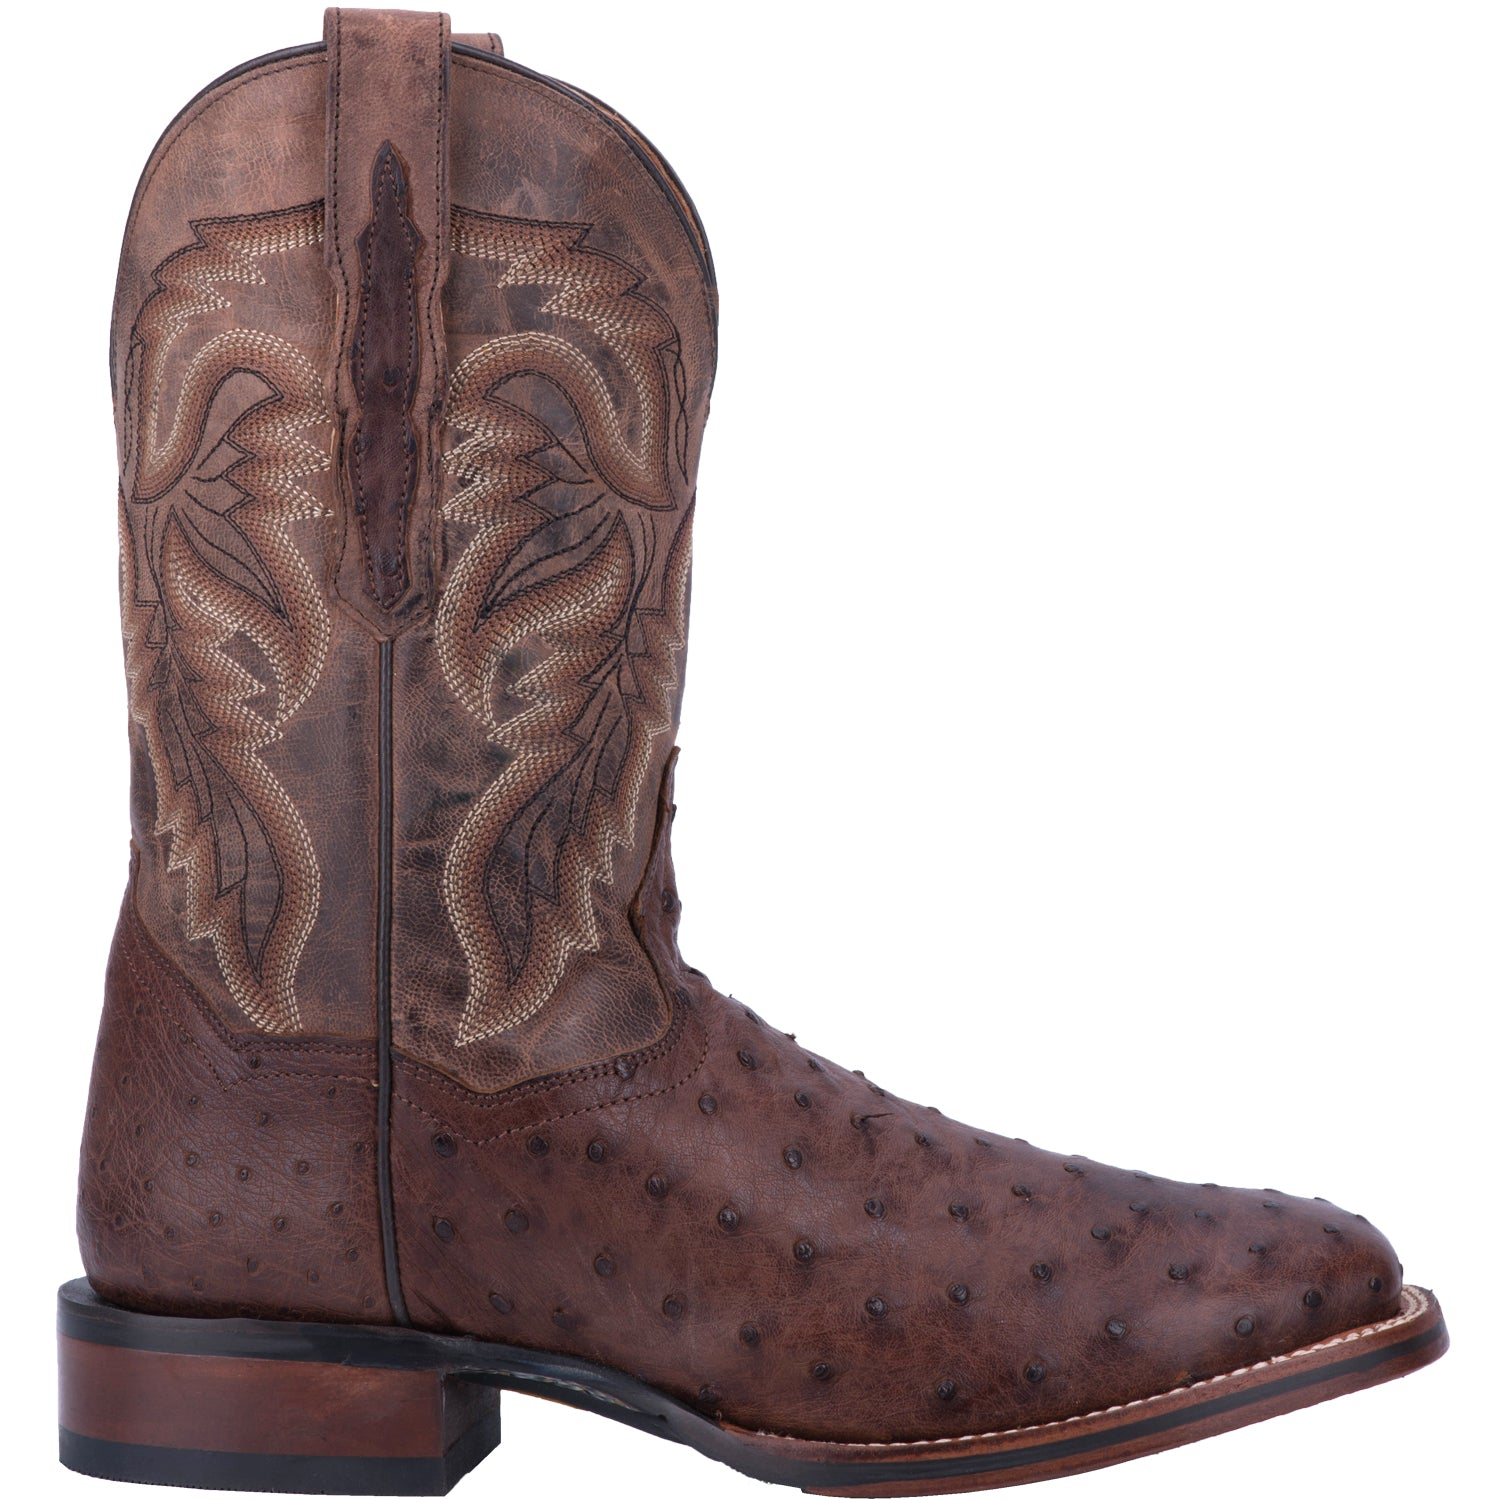 ALAMOSA FULL QUILL OSTRICH BOOT 4248825462826